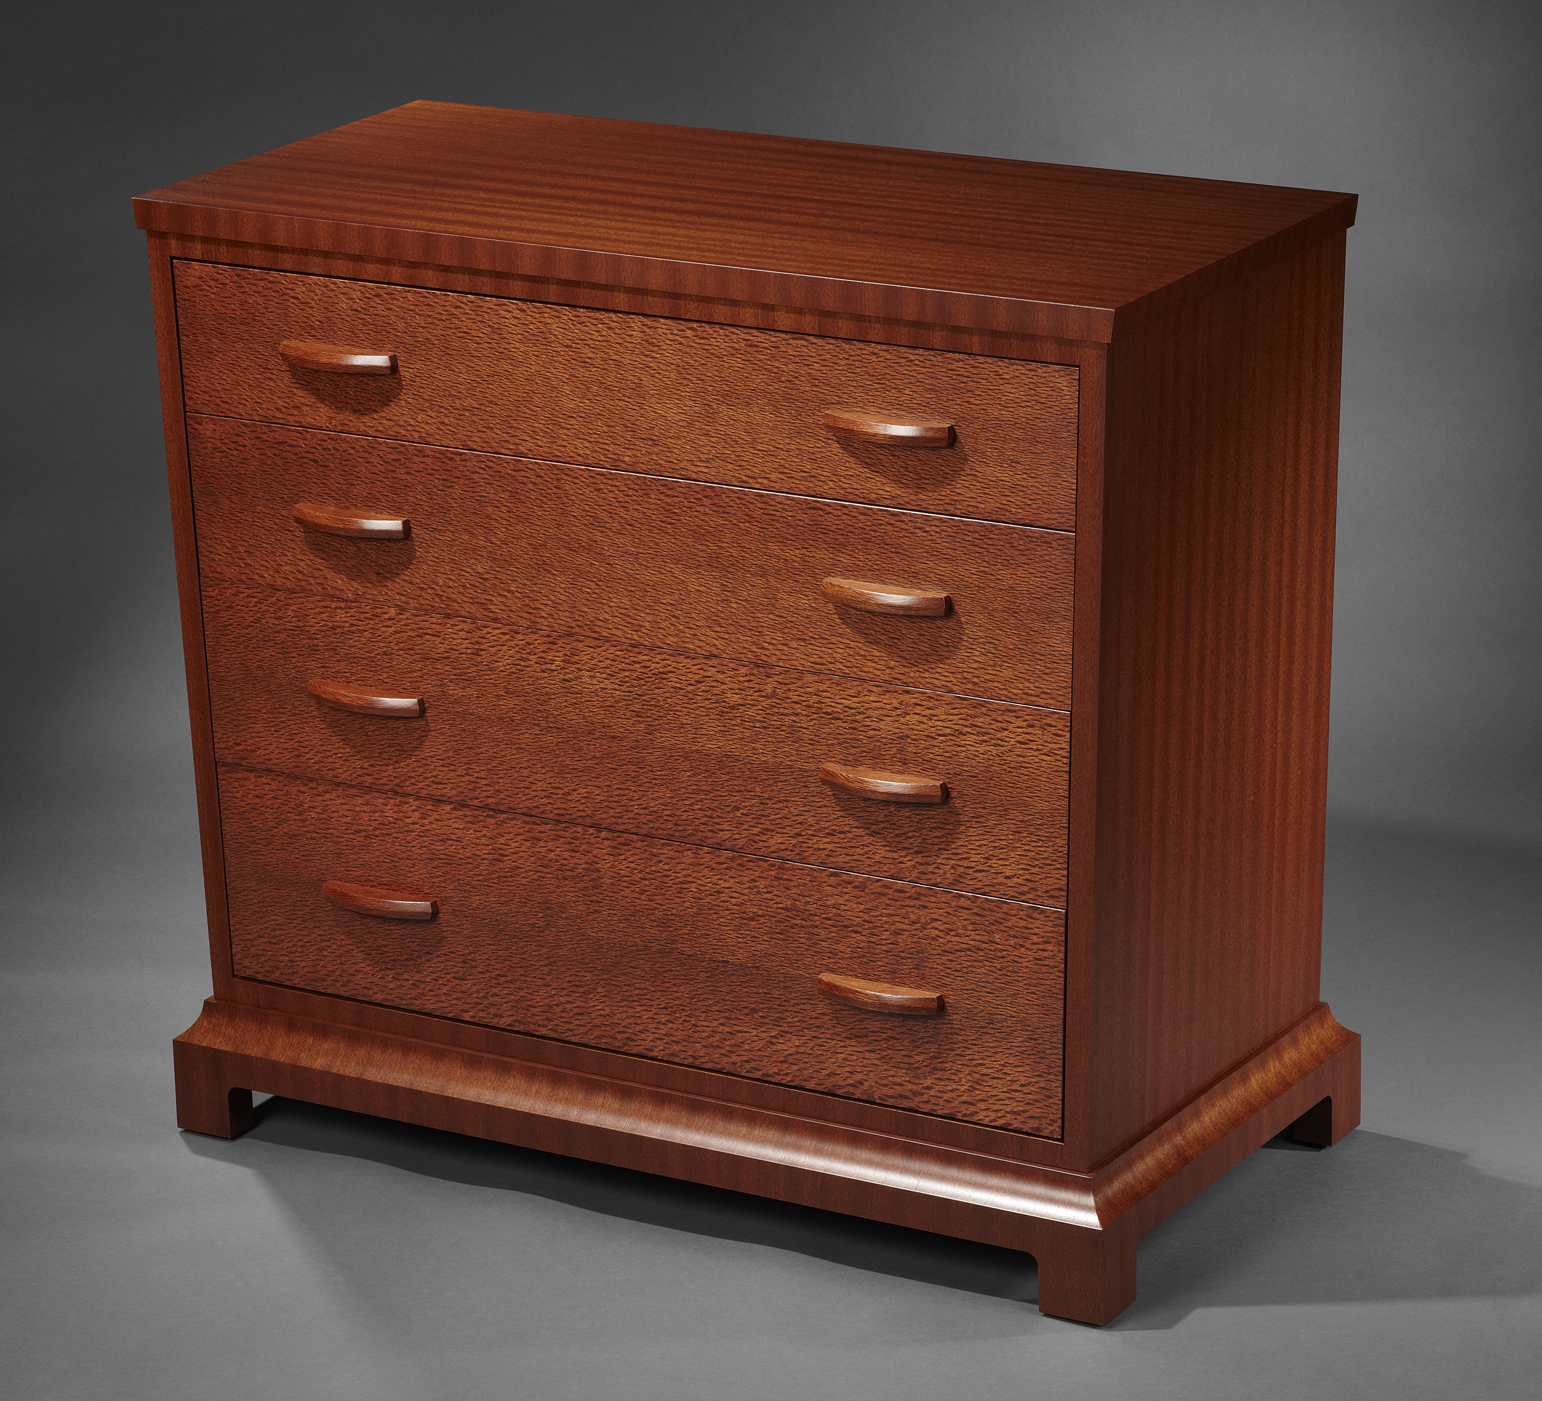 Mahogany and Lacewood Dresser